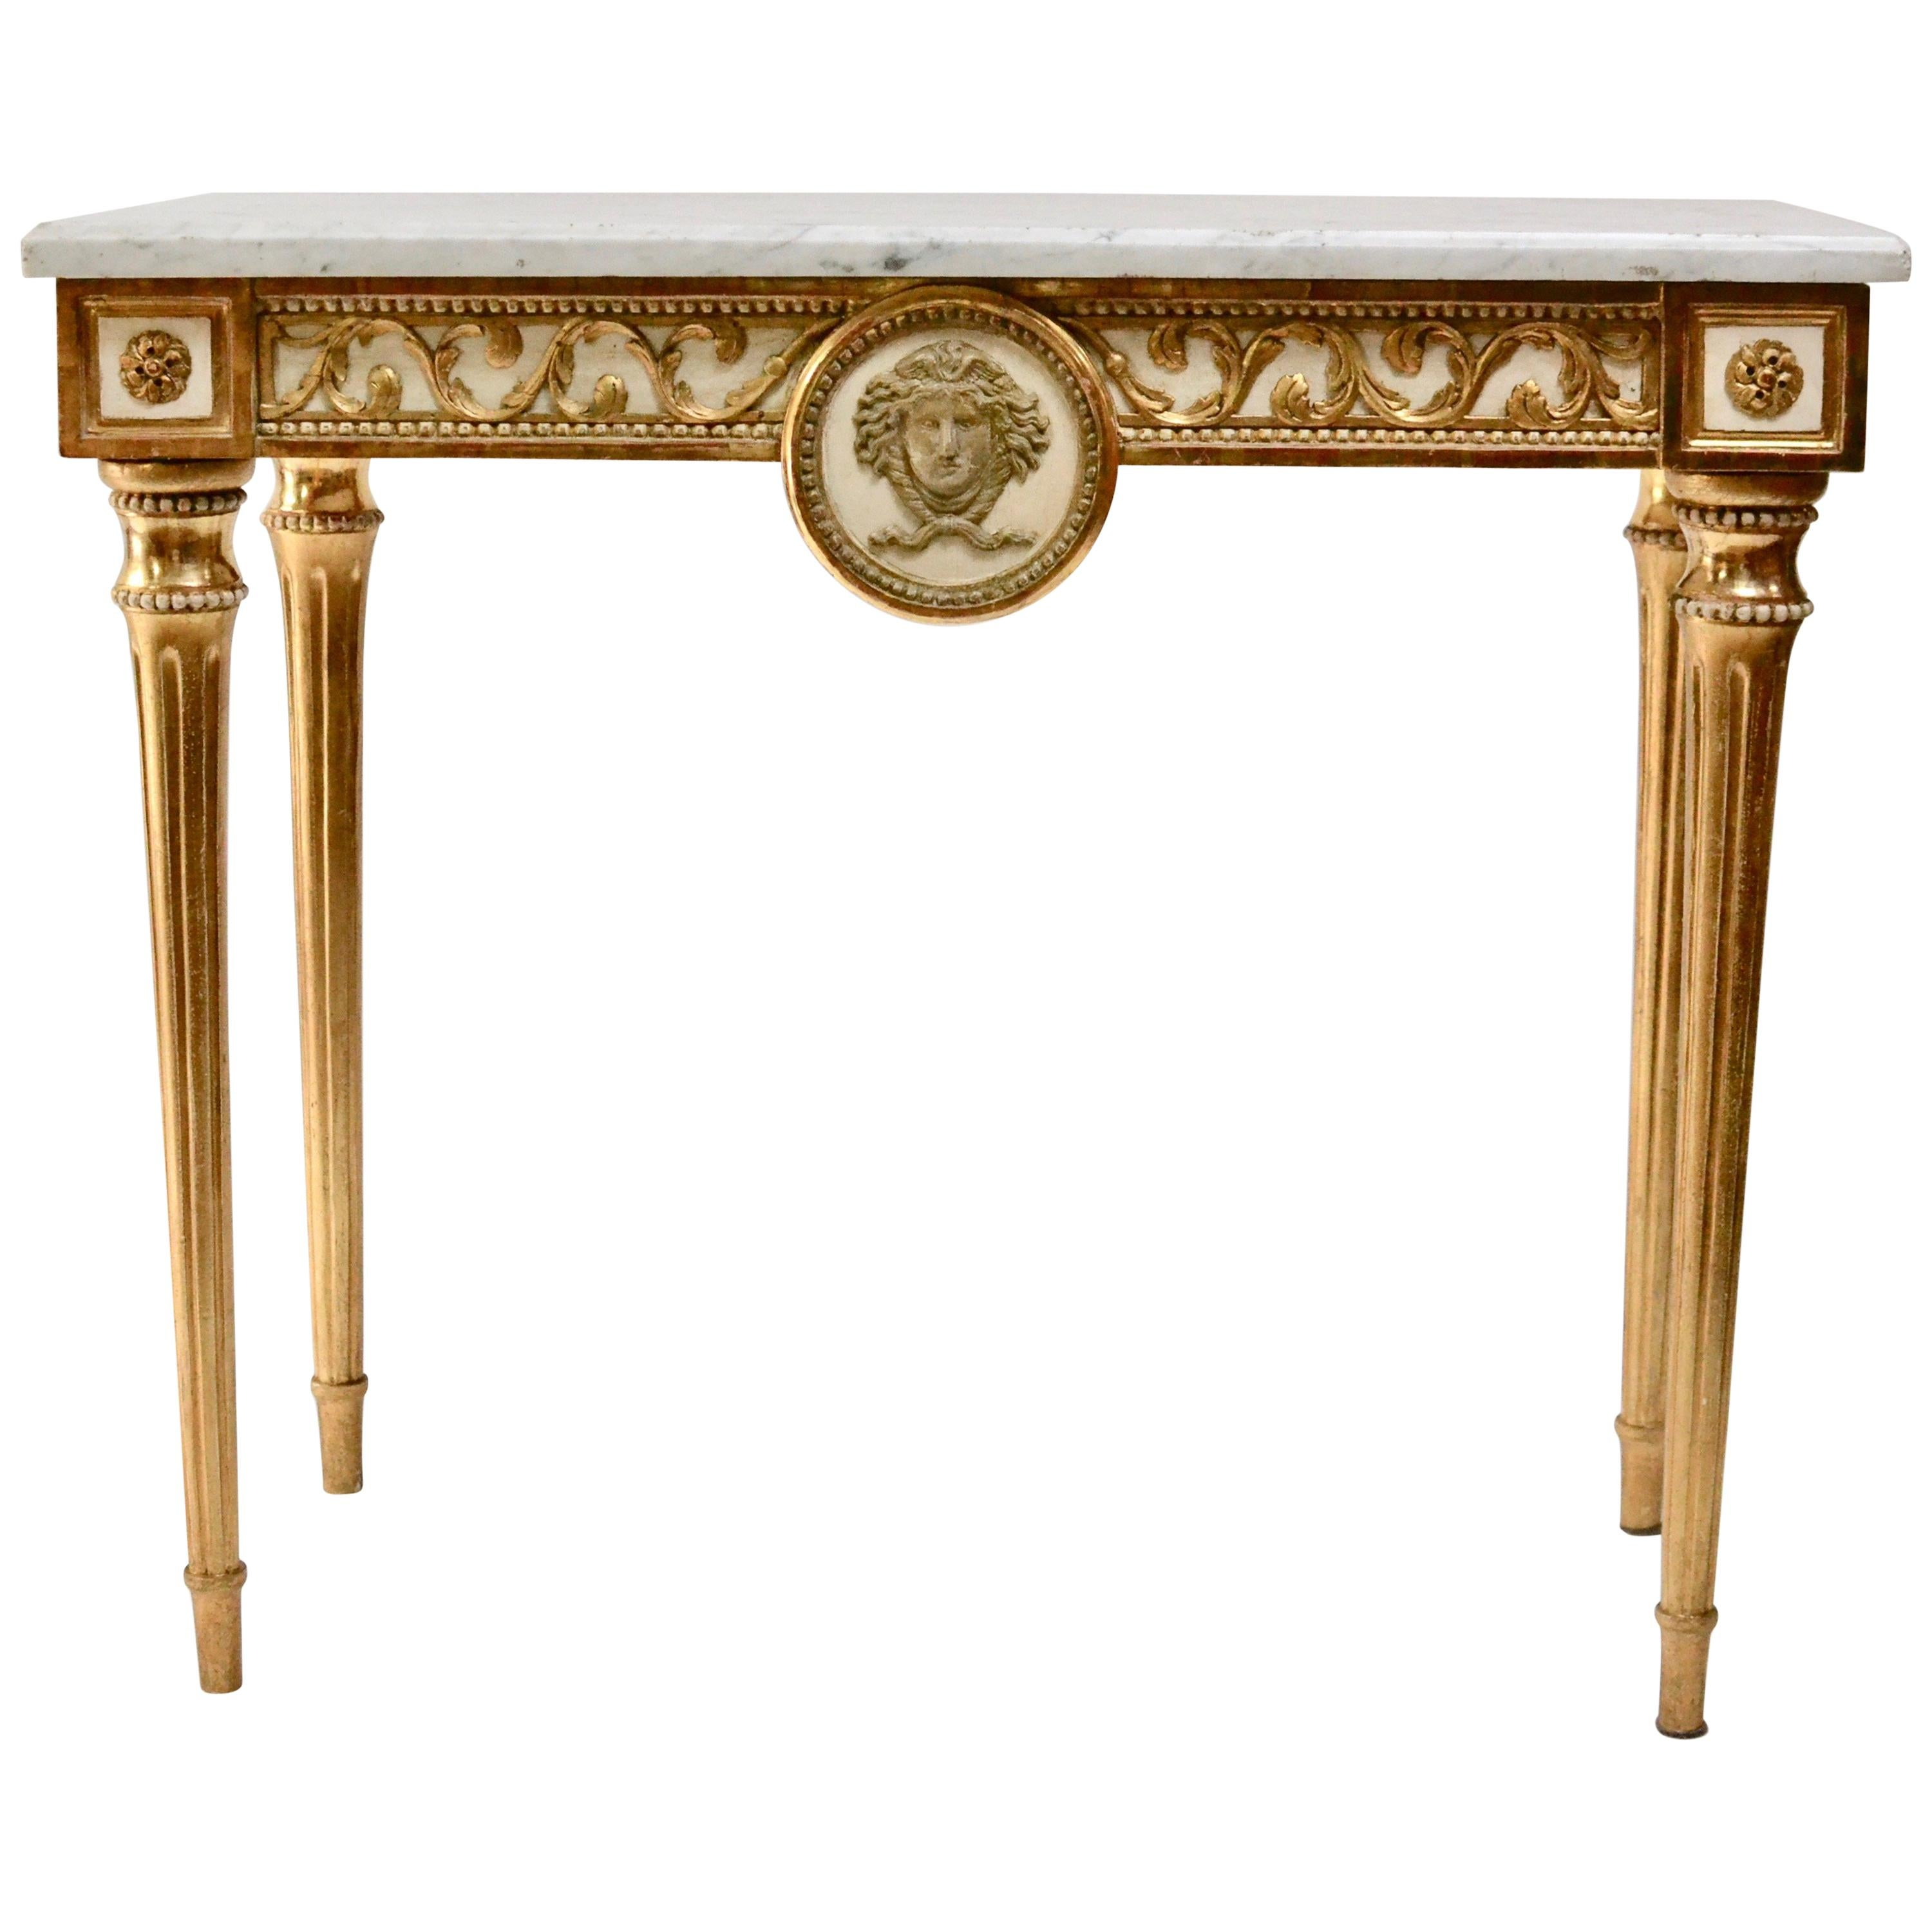 Charmant Swedish Gustavian Giltwood Console Table, Marble Top, 18th Century For Sale